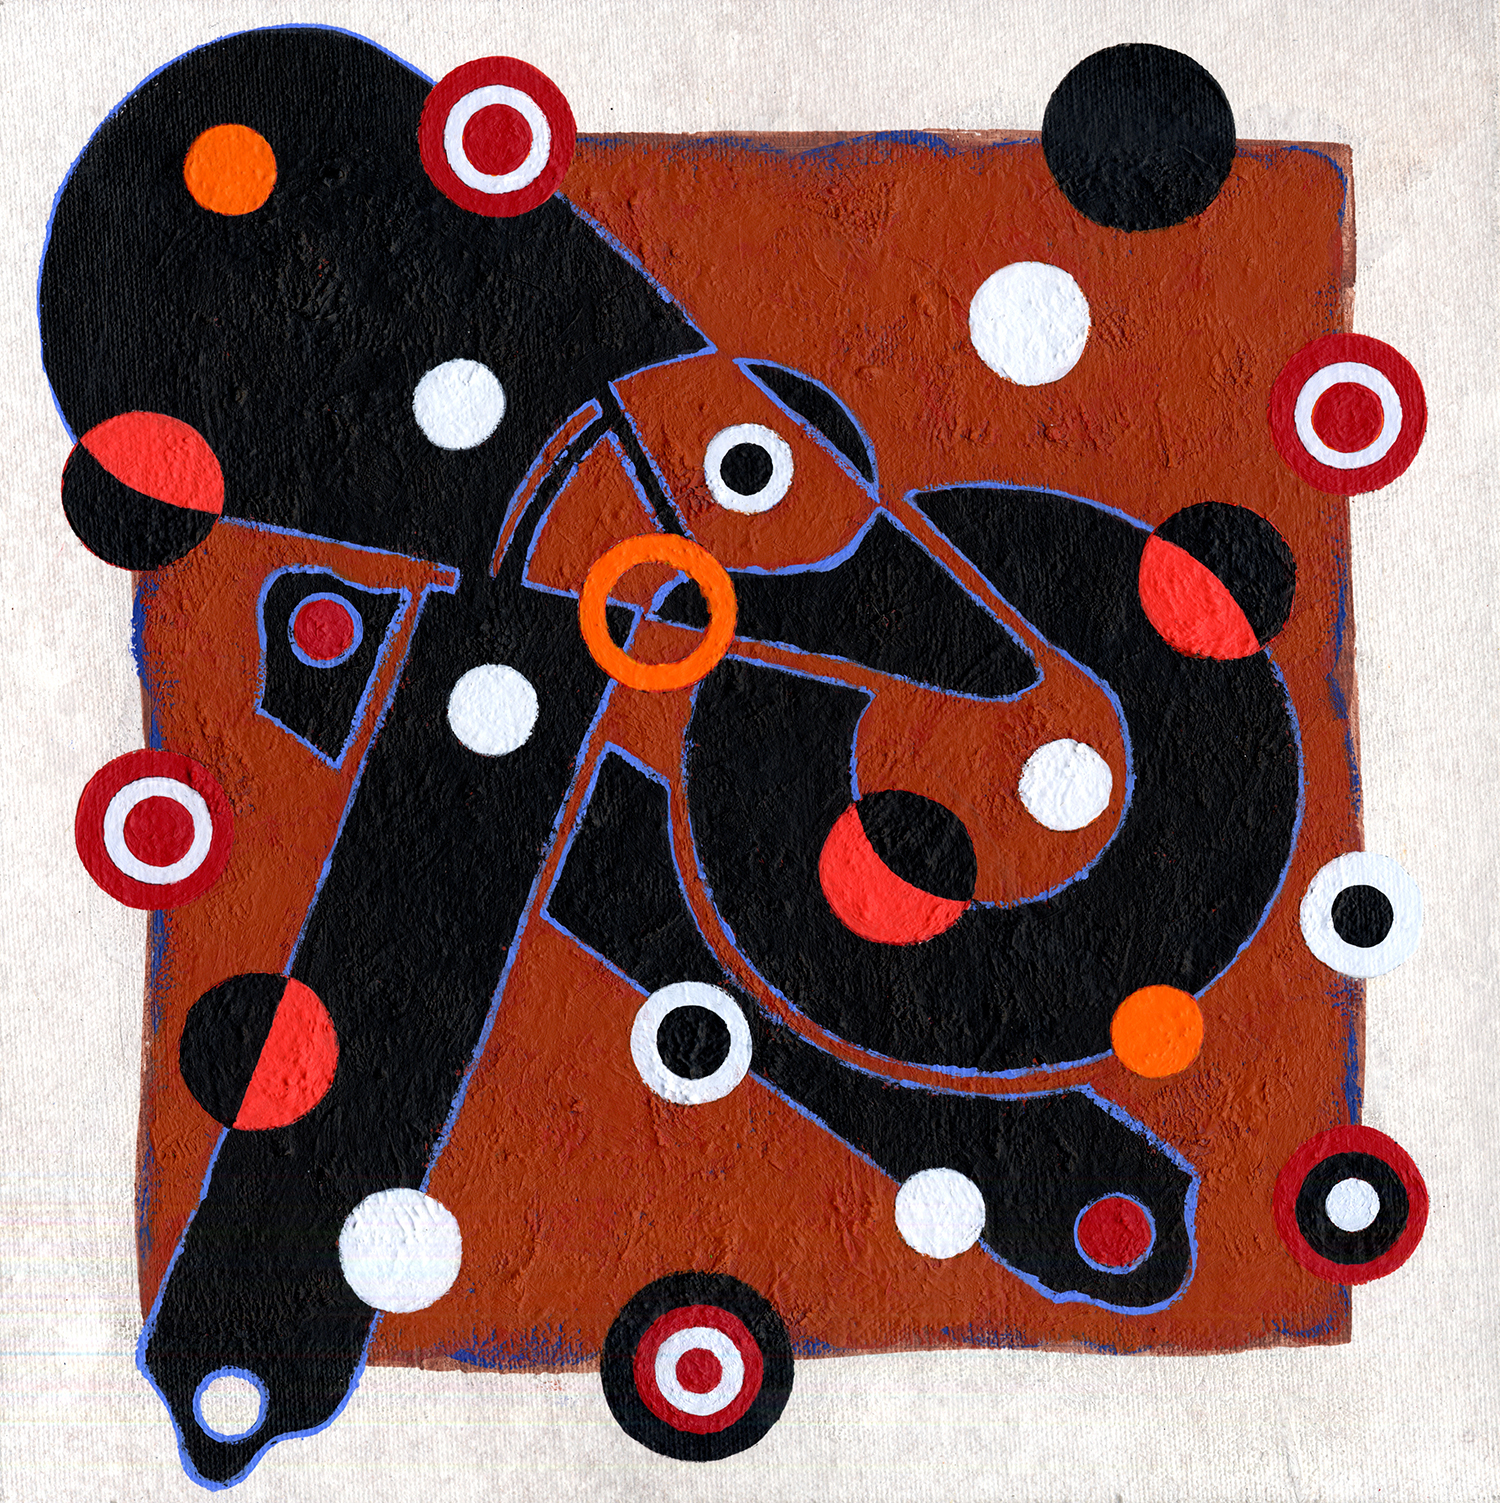 S151/Sq31  , 2011, oil and wax on canvas, 12 x 12 in.